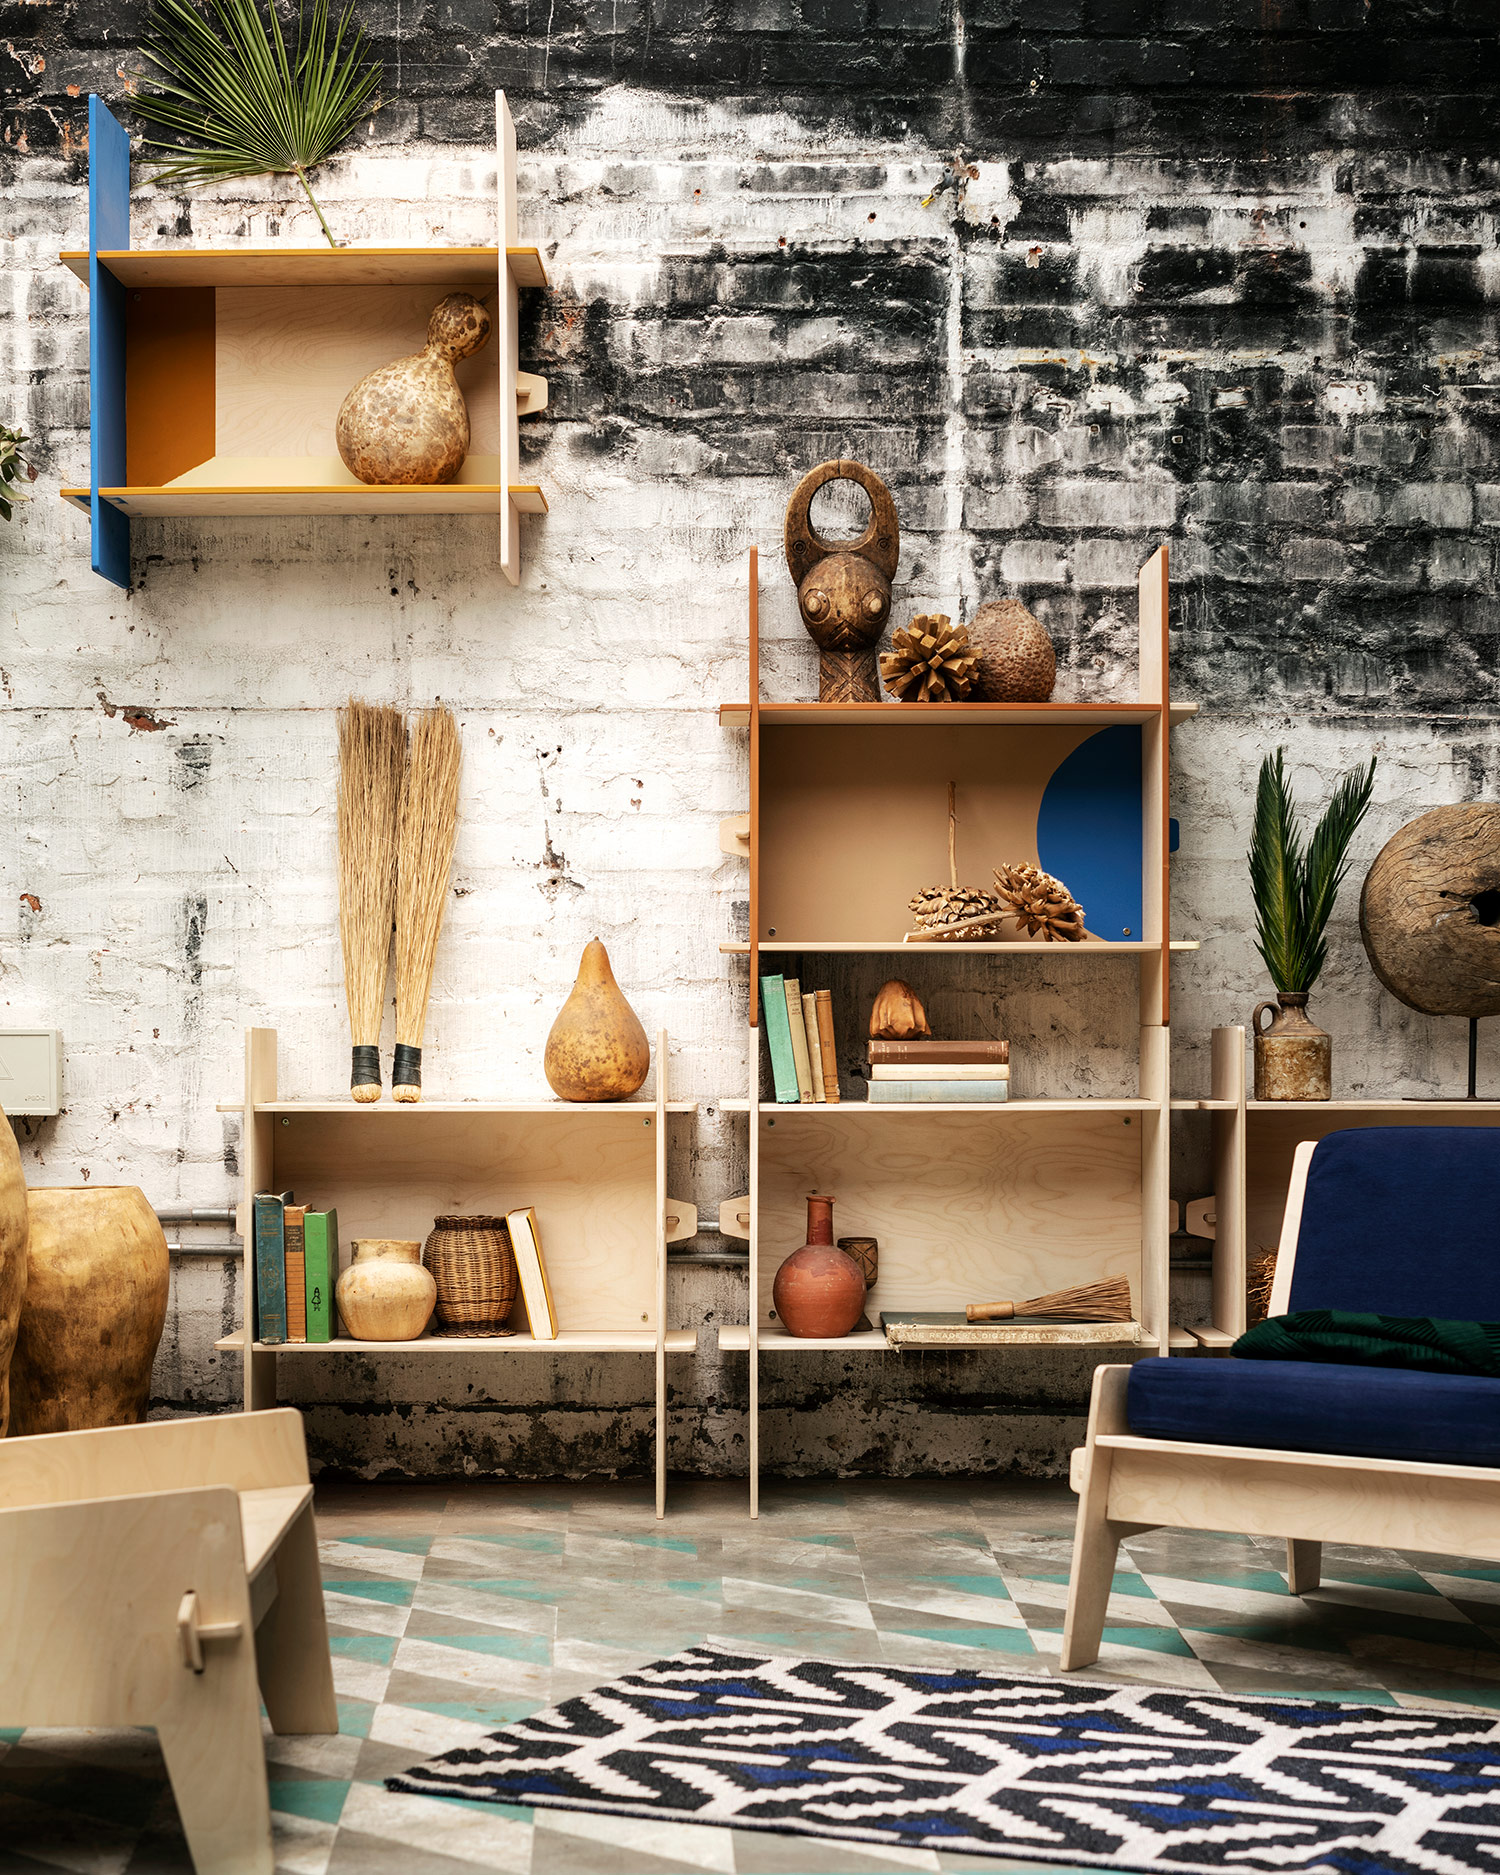 African aesthetics in Ikea's new limited edition collection via @kronekern